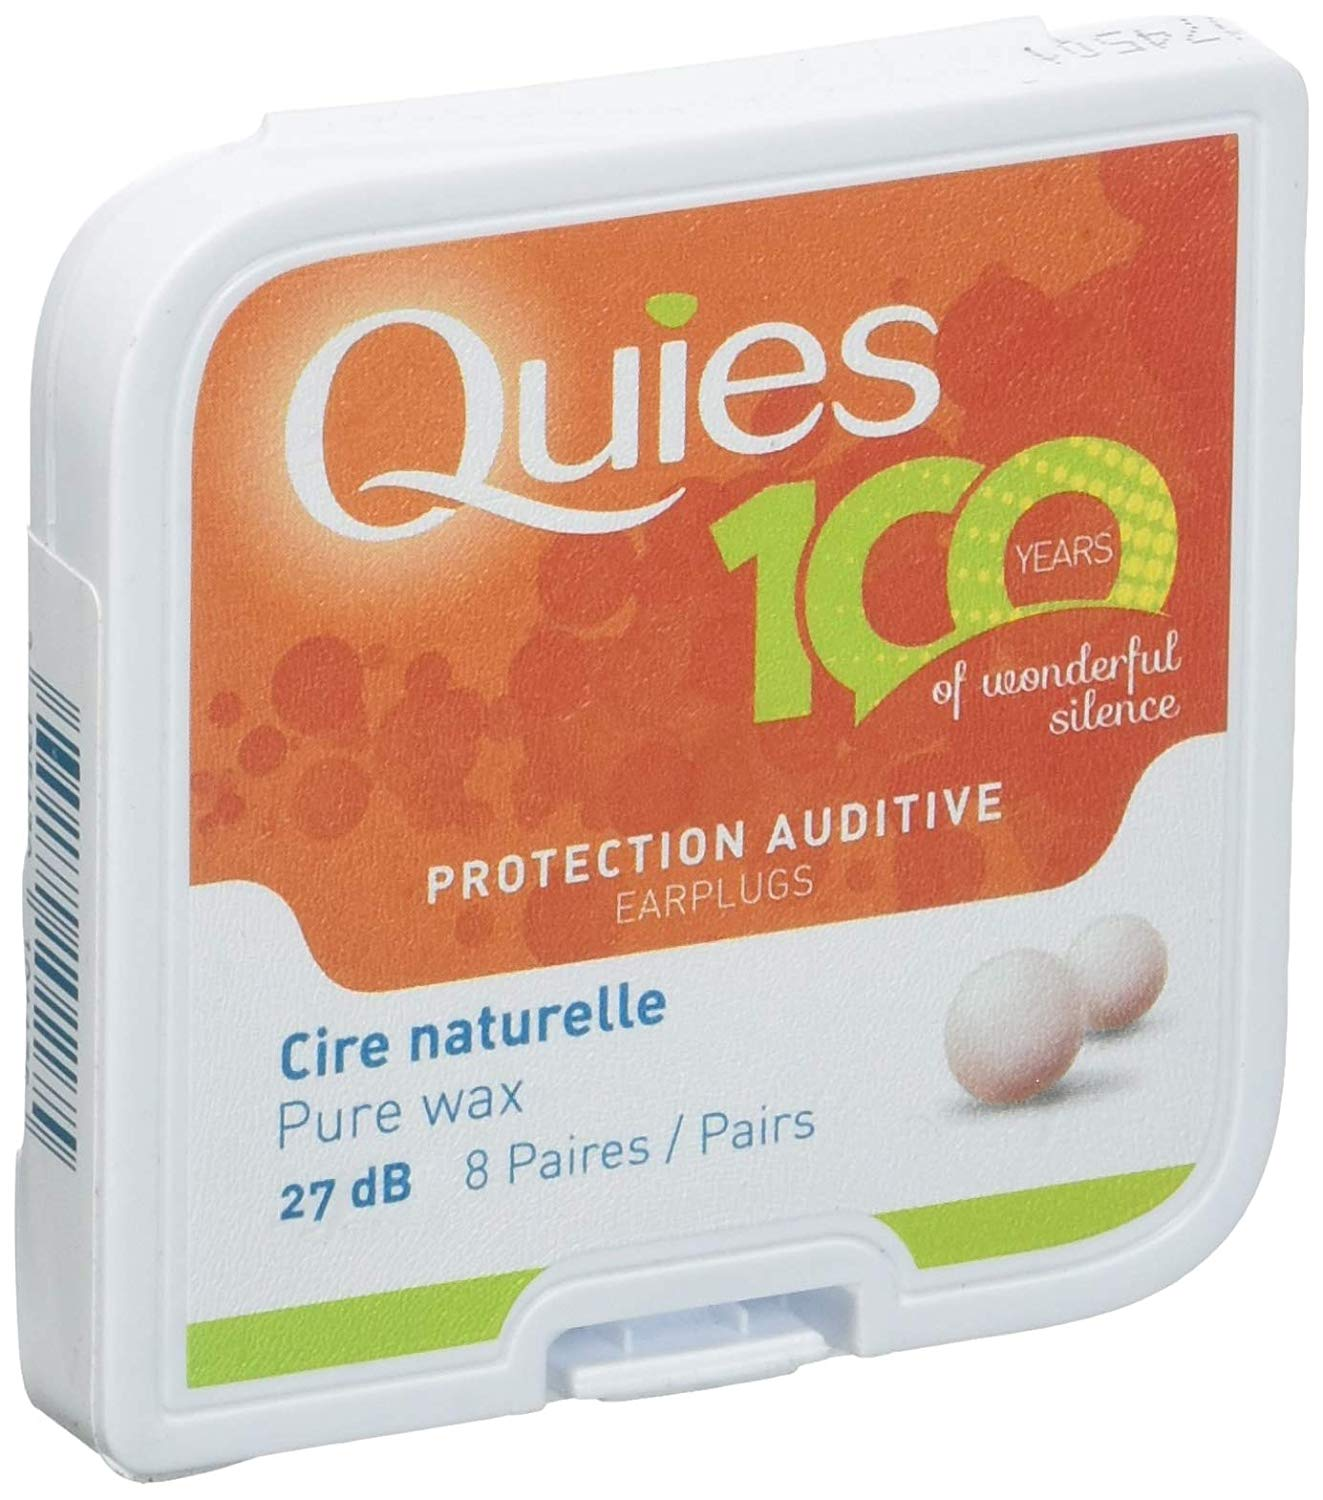 Quies Wax Ear Plugs from France $7.50 per box